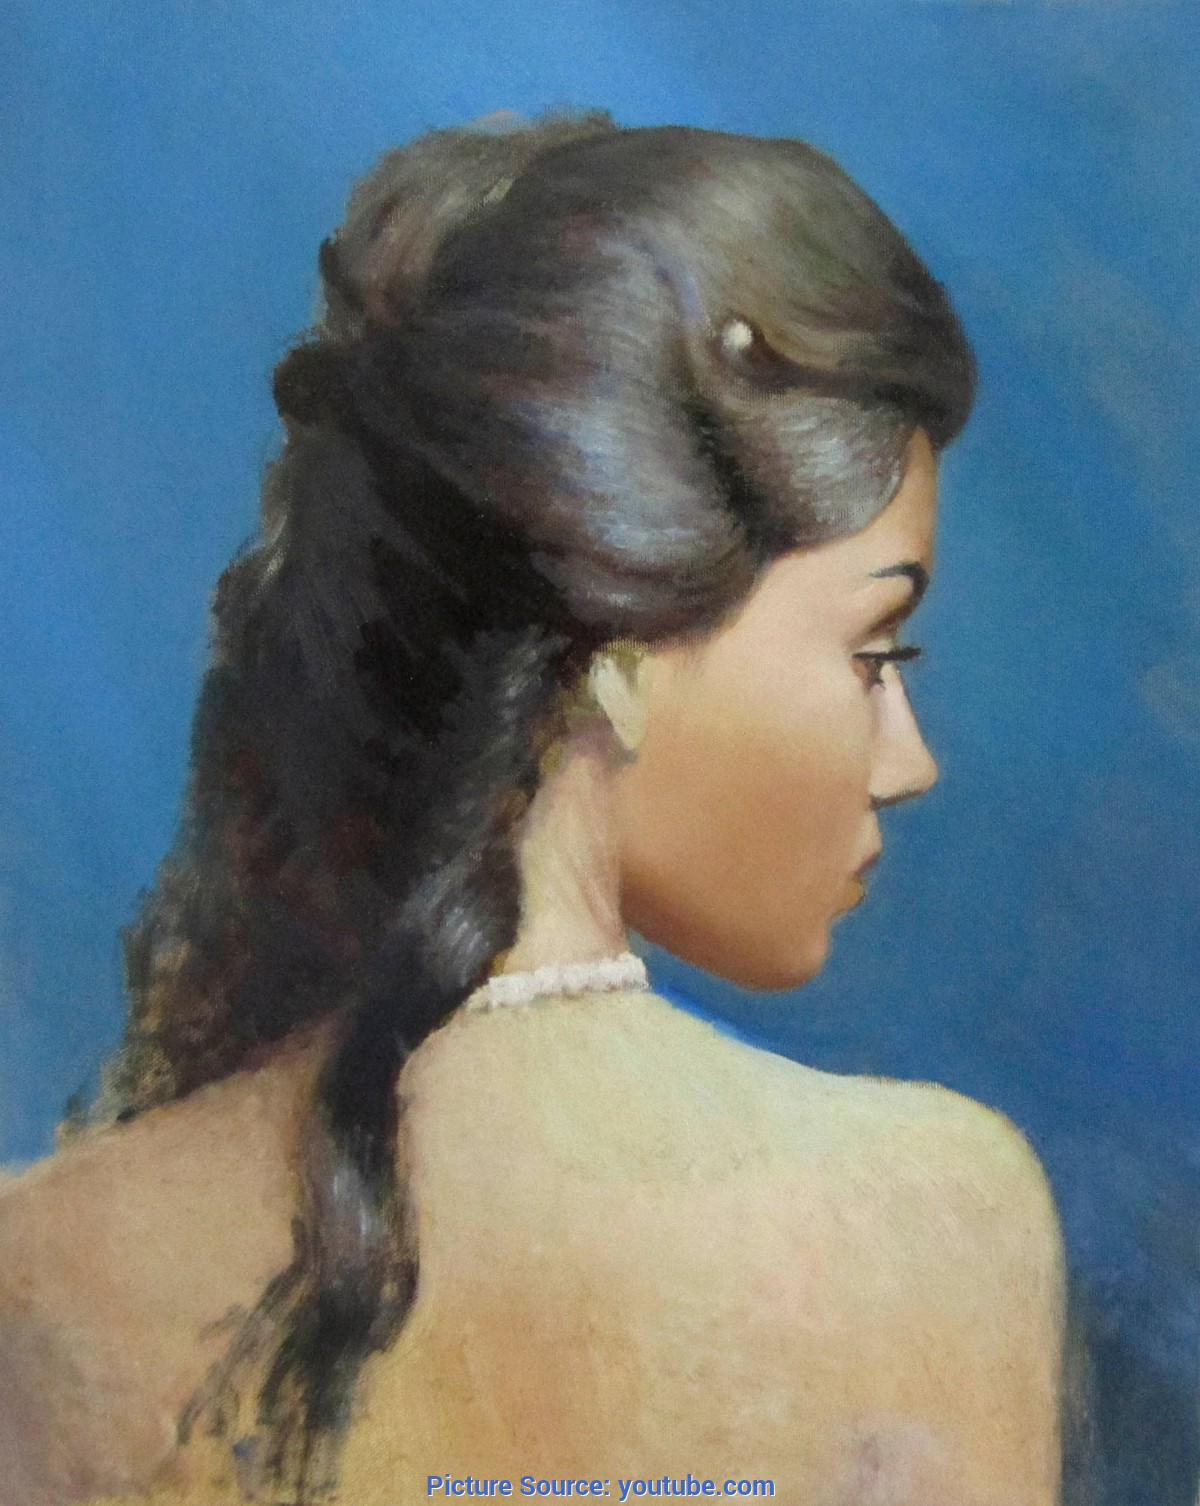 Useful Portrait Painting Lessons Free Full Portrait Painting Video By Sergey Gusev, 2015. - You